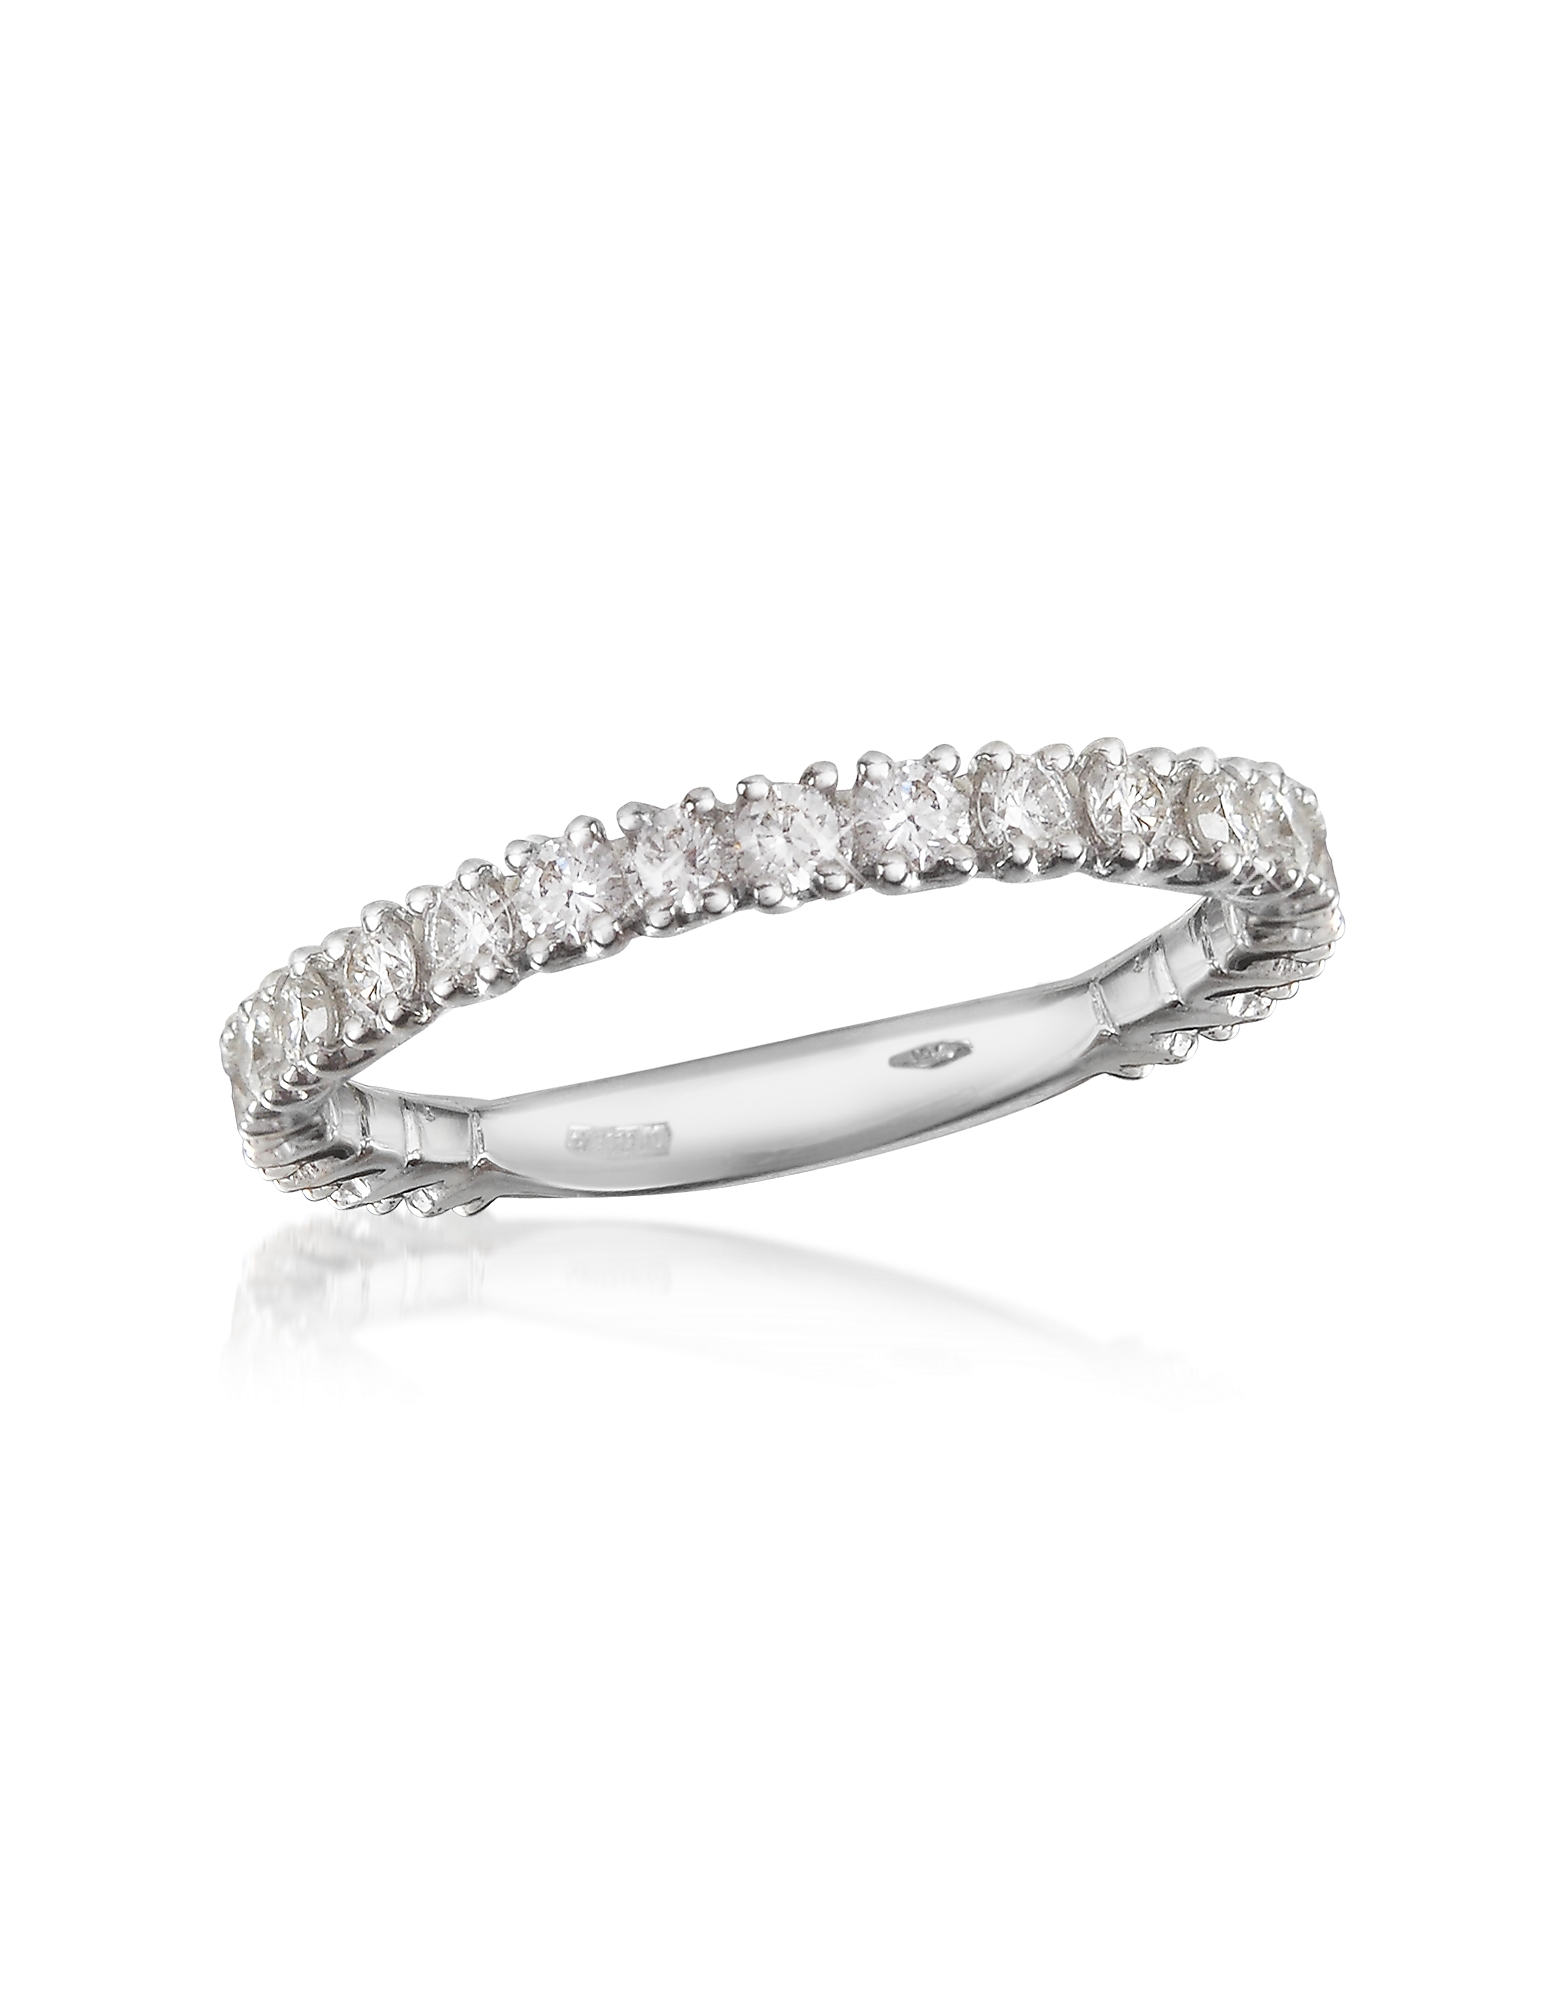 Forzieri Rings, 0.74 ct Diamond 18K Gold Eternity Band